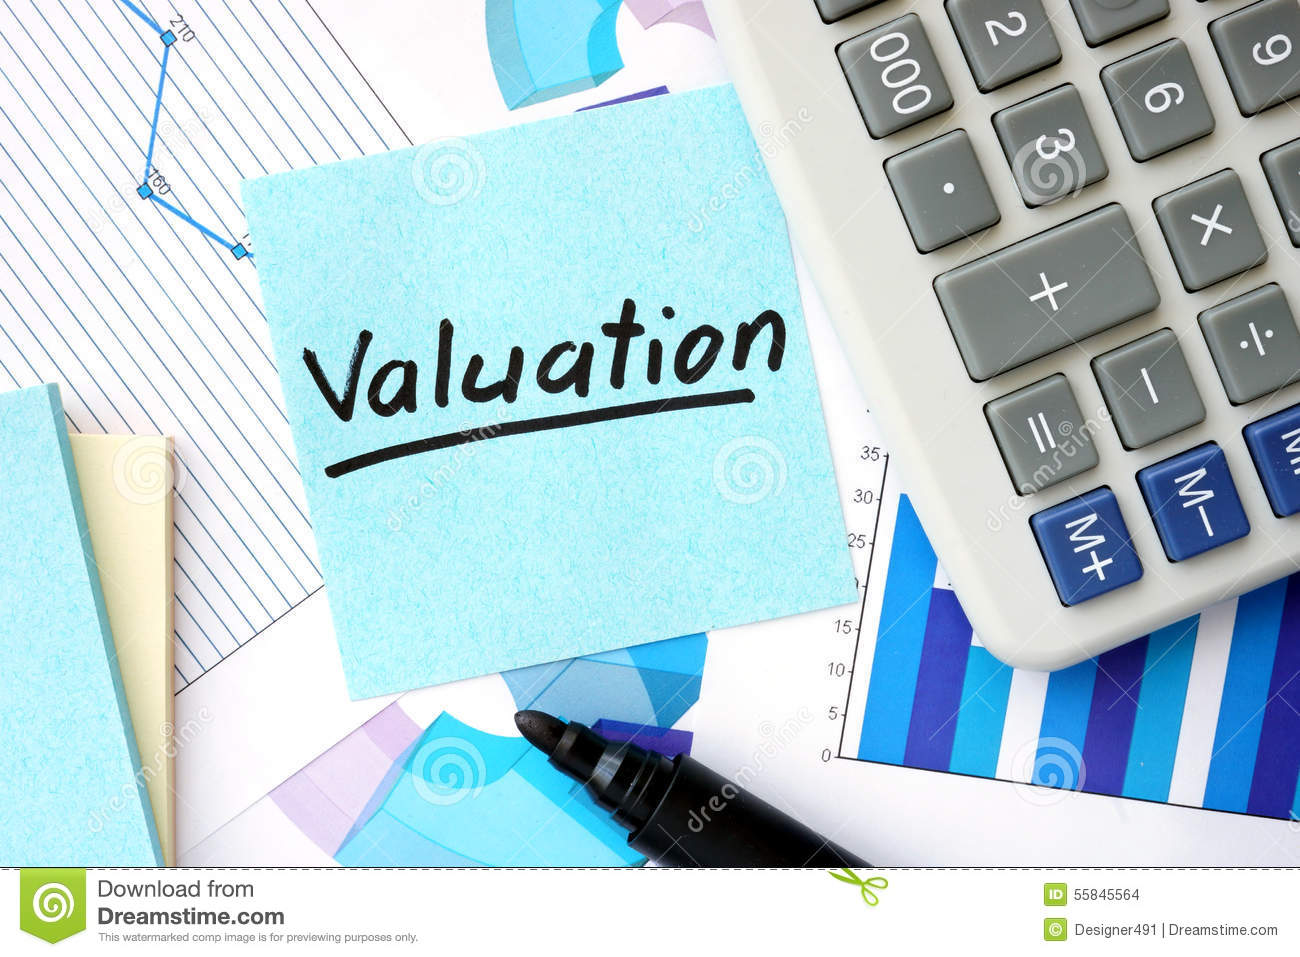 business valuation paper (2016) american society of appraisers: business valuation committee special topics paper #1: use of offers as indications of value in the market approach.